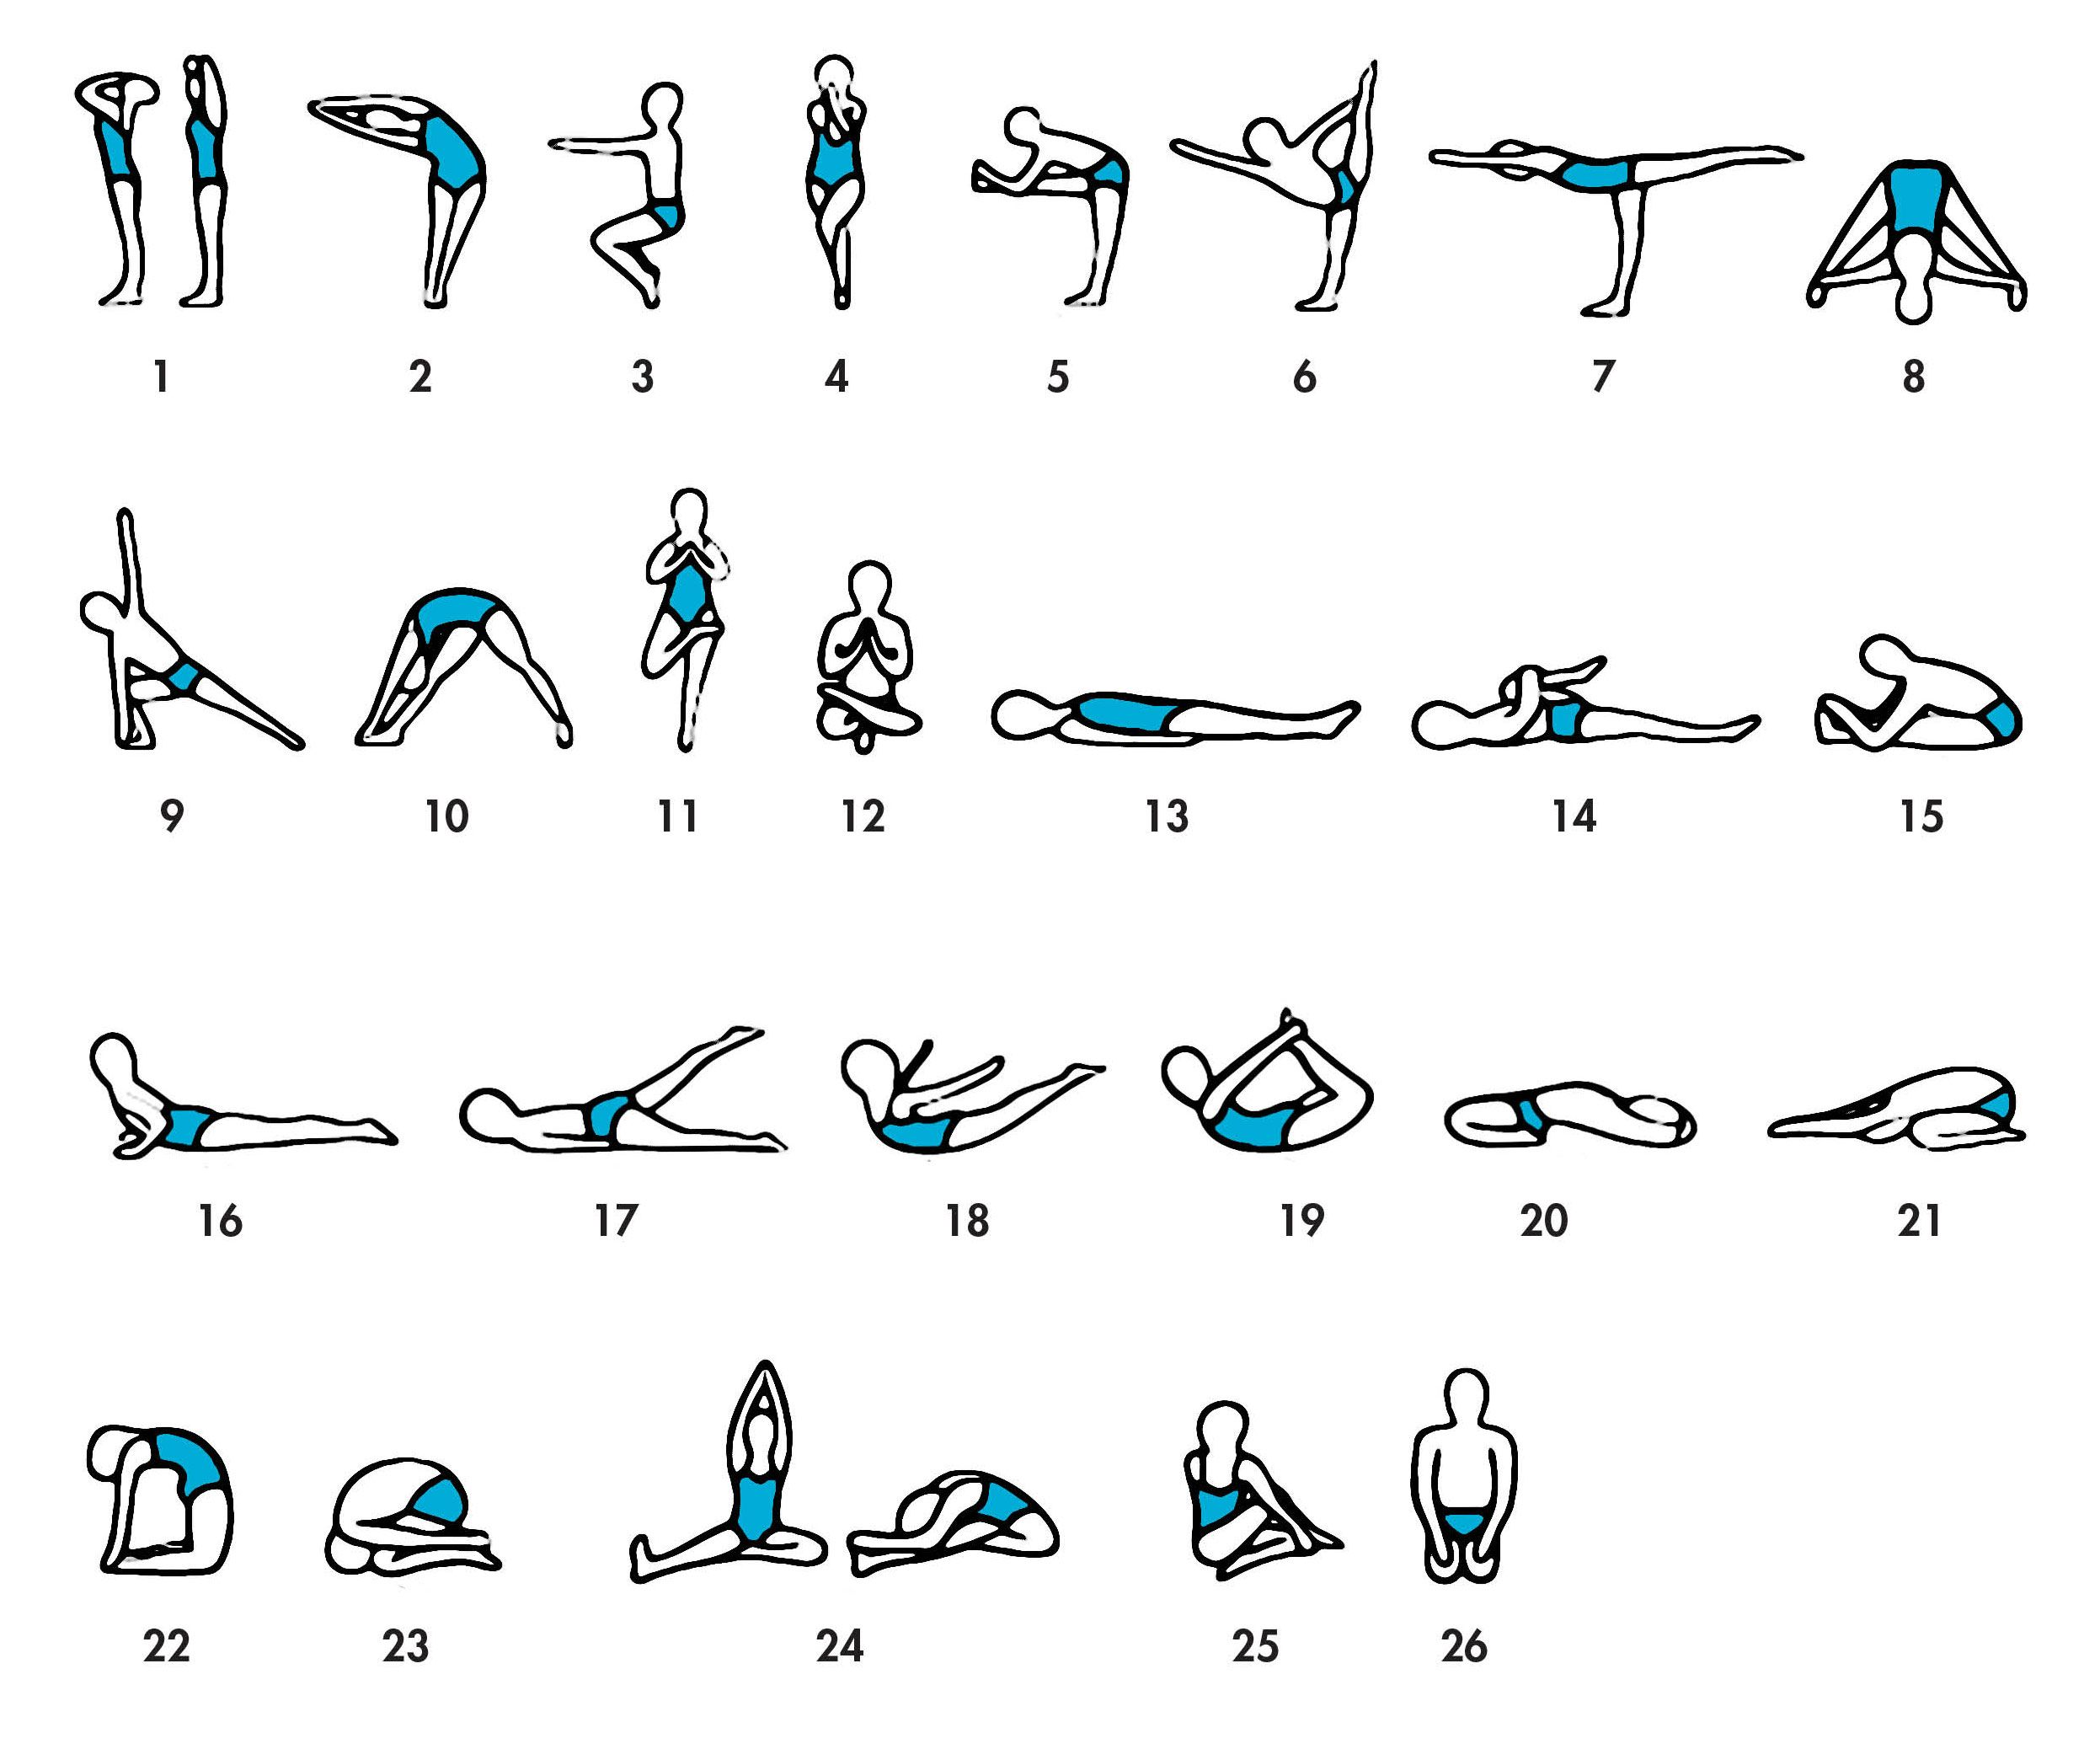 Bikram yoga sequence yoga pinterest bikram yoga yoga and mastering these basic yoga poses will help you strengthen and stretch your muscles improve your posture and prevent workout injuries altavistaventures Choice Image